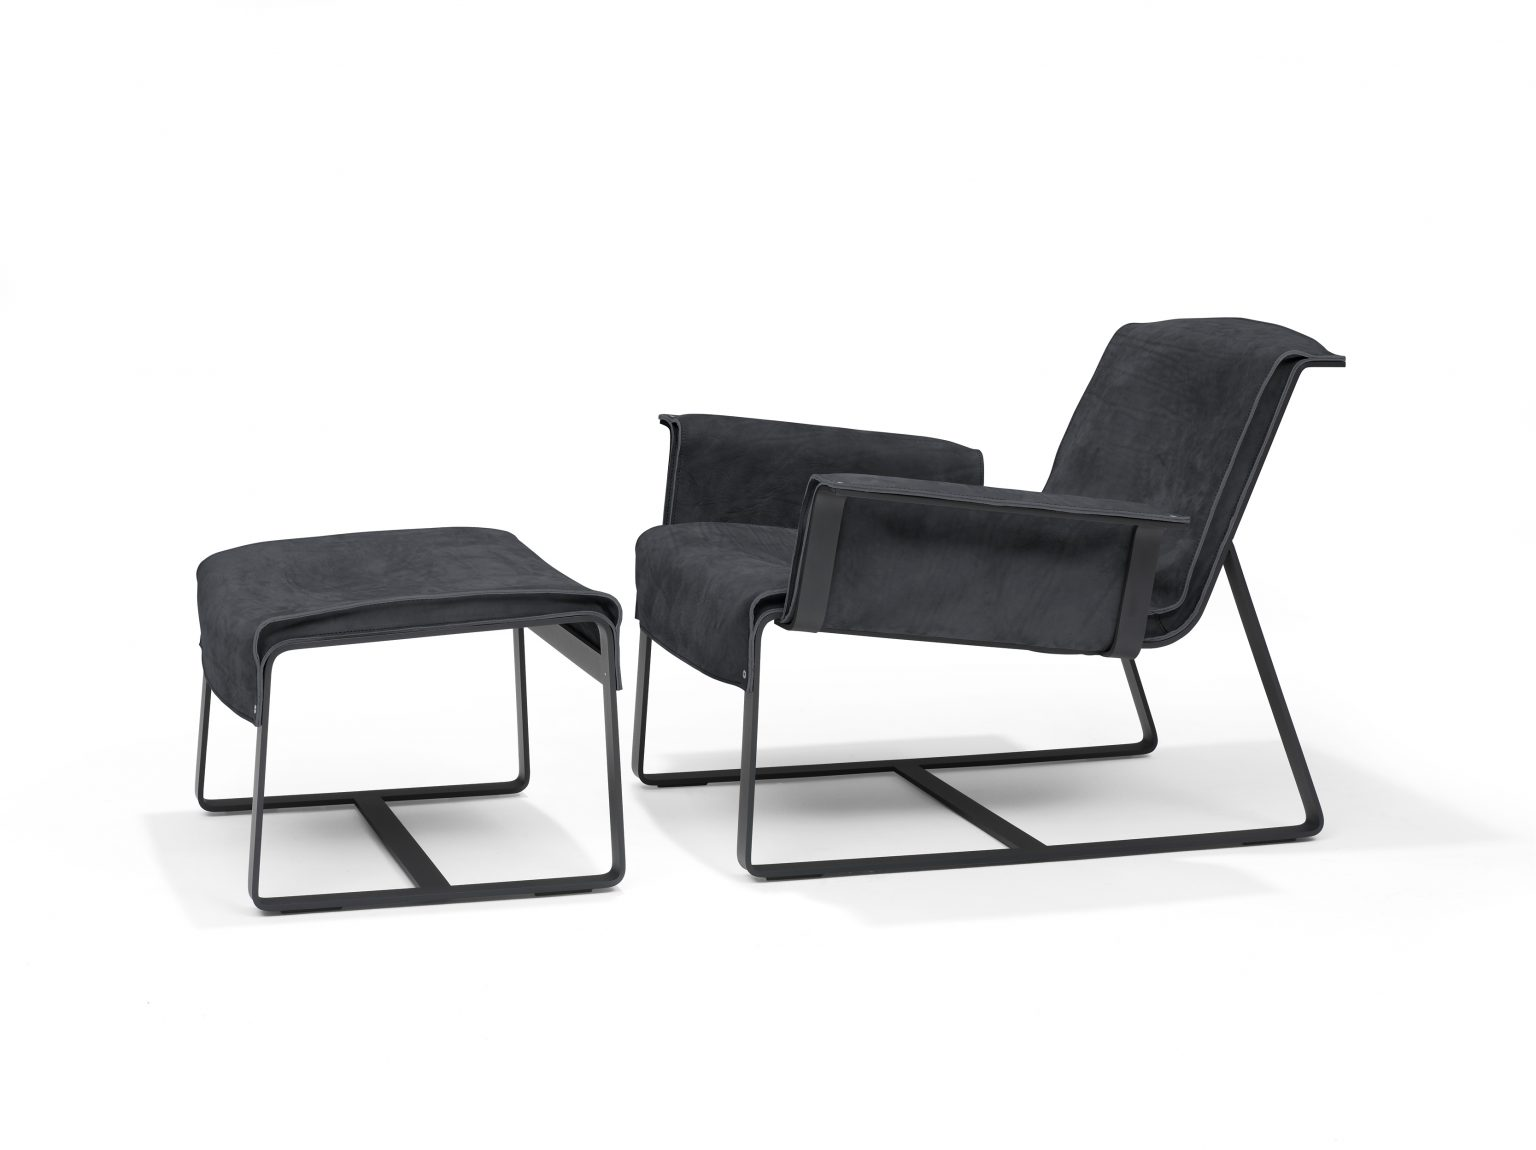 Biennale Interieur - Belgium's leading design and interior event - Founded-lounge-chair-anthracite-2arm-ottoman.jpg